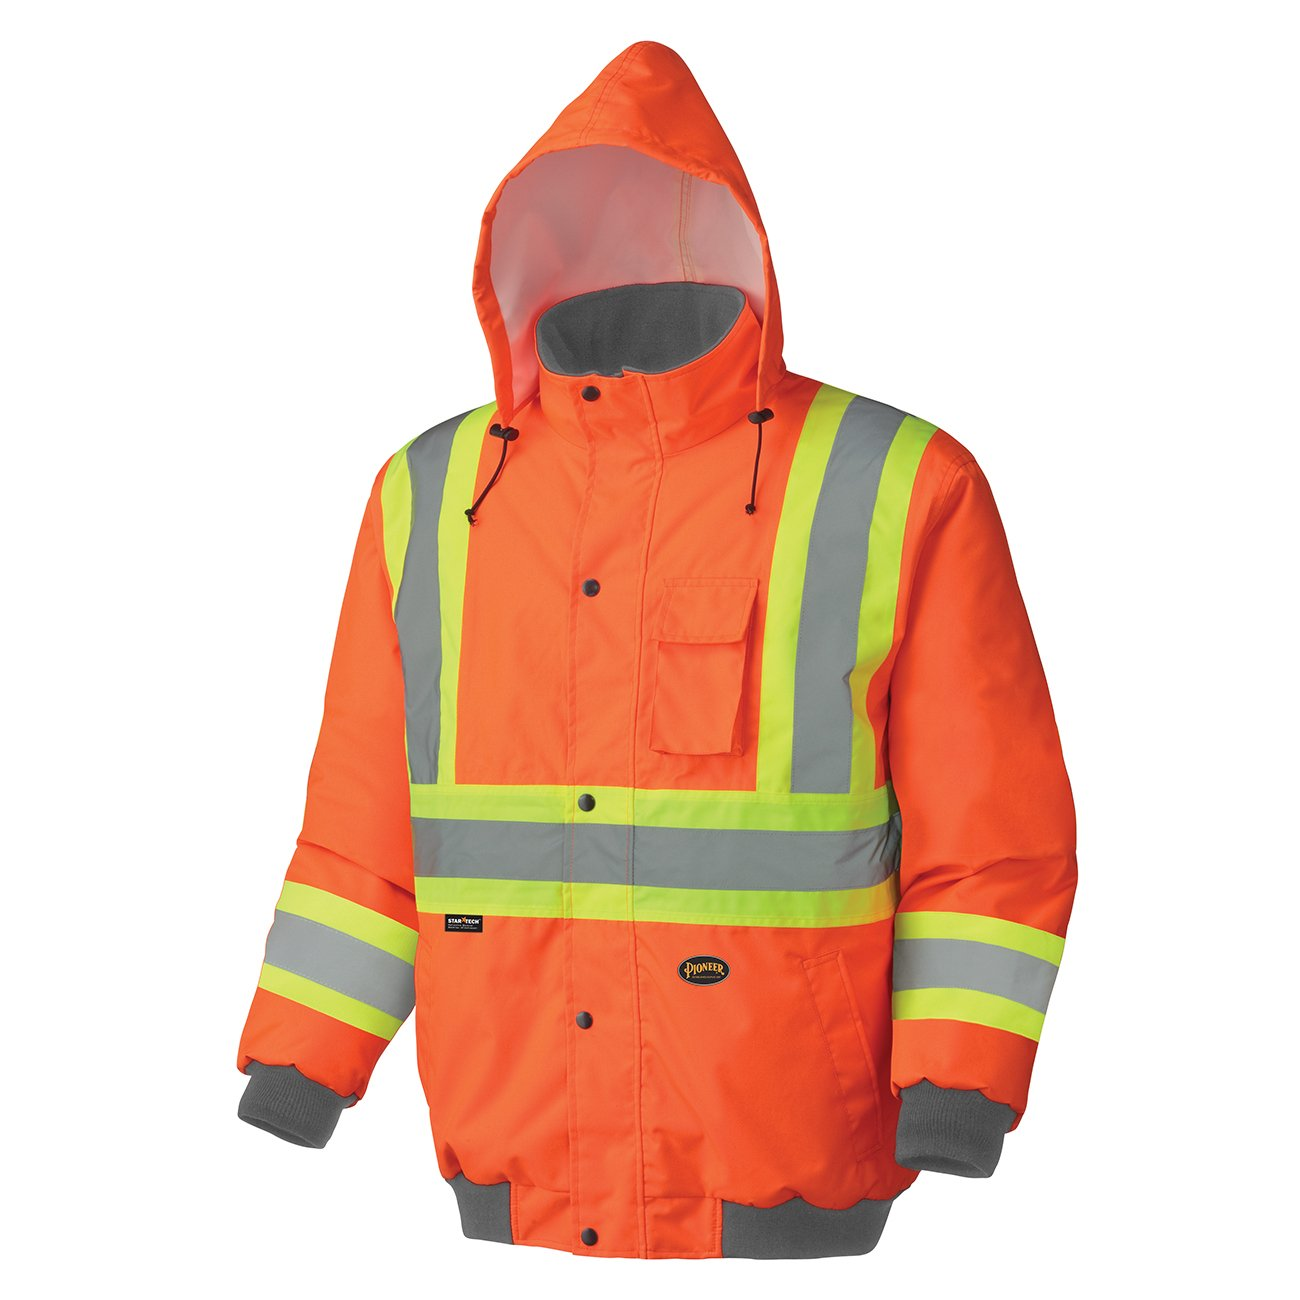 Pioneer V1150250-4XL Winter Quilted Safety Bomber Jacket-Waterproof, Orange, 4XL